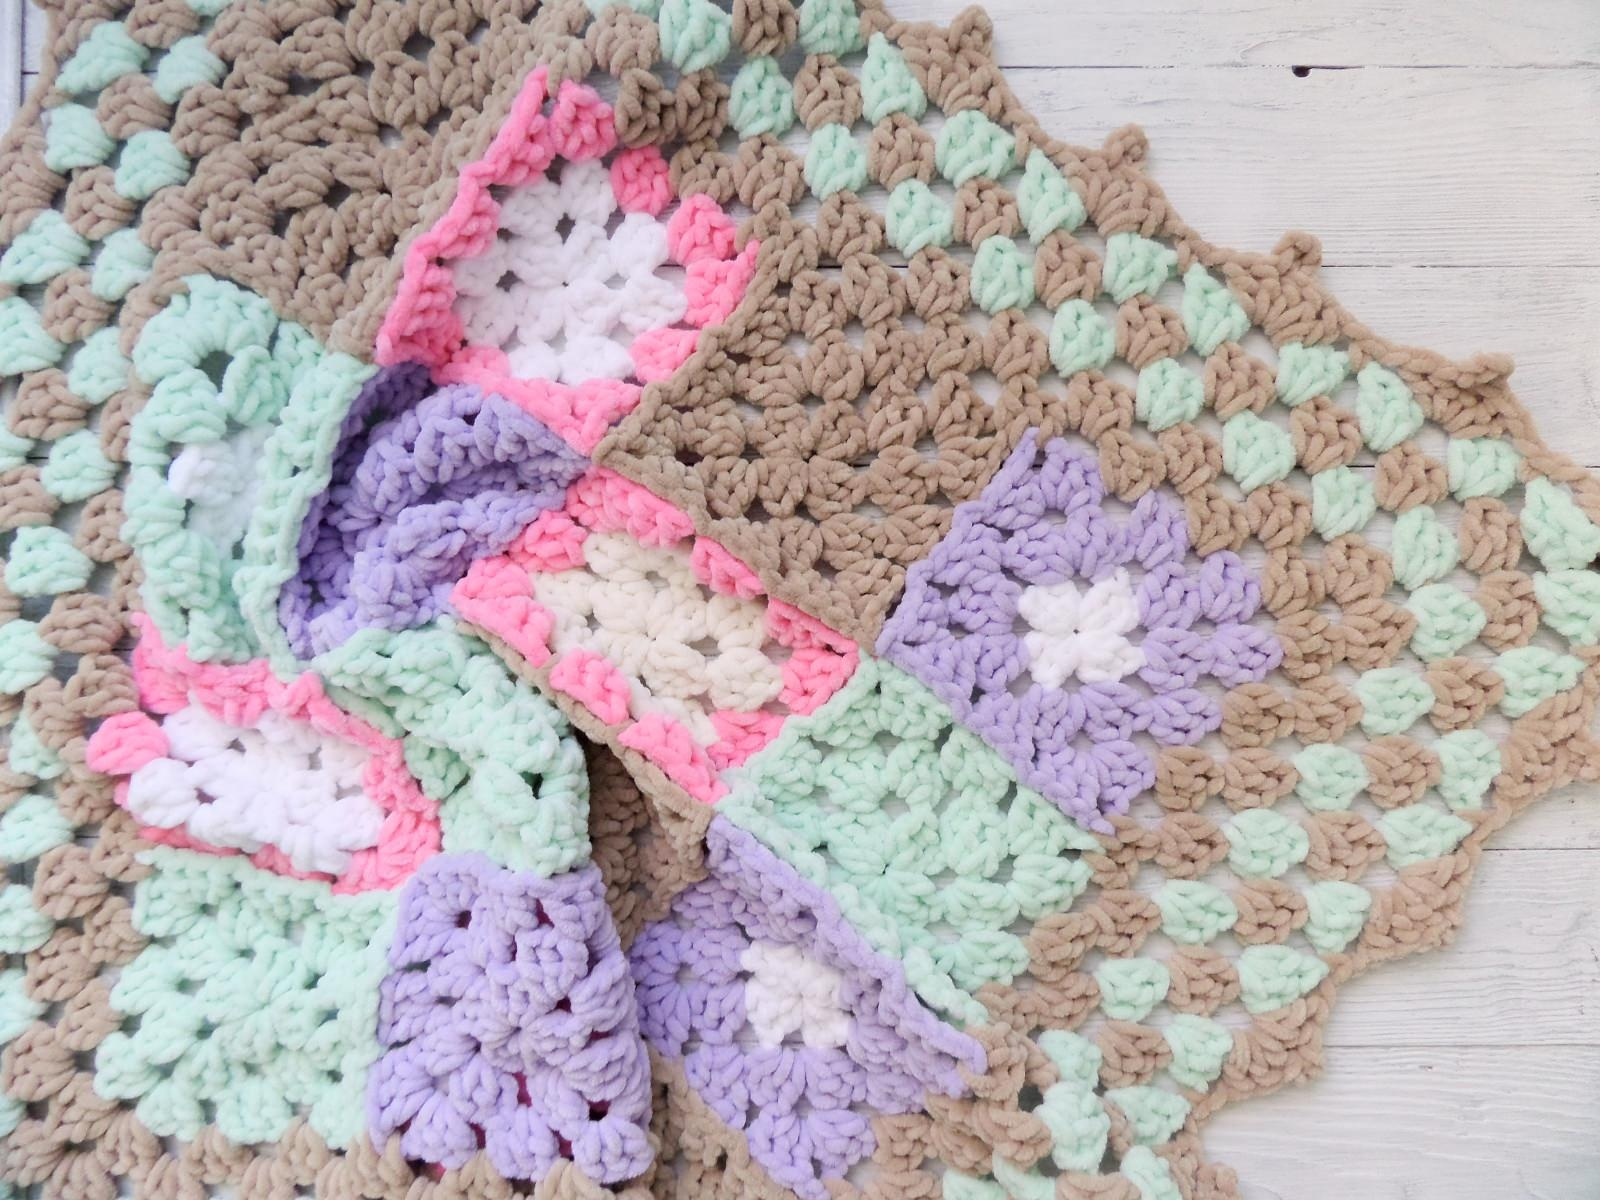 Knitted baby blanket square - PLED 299